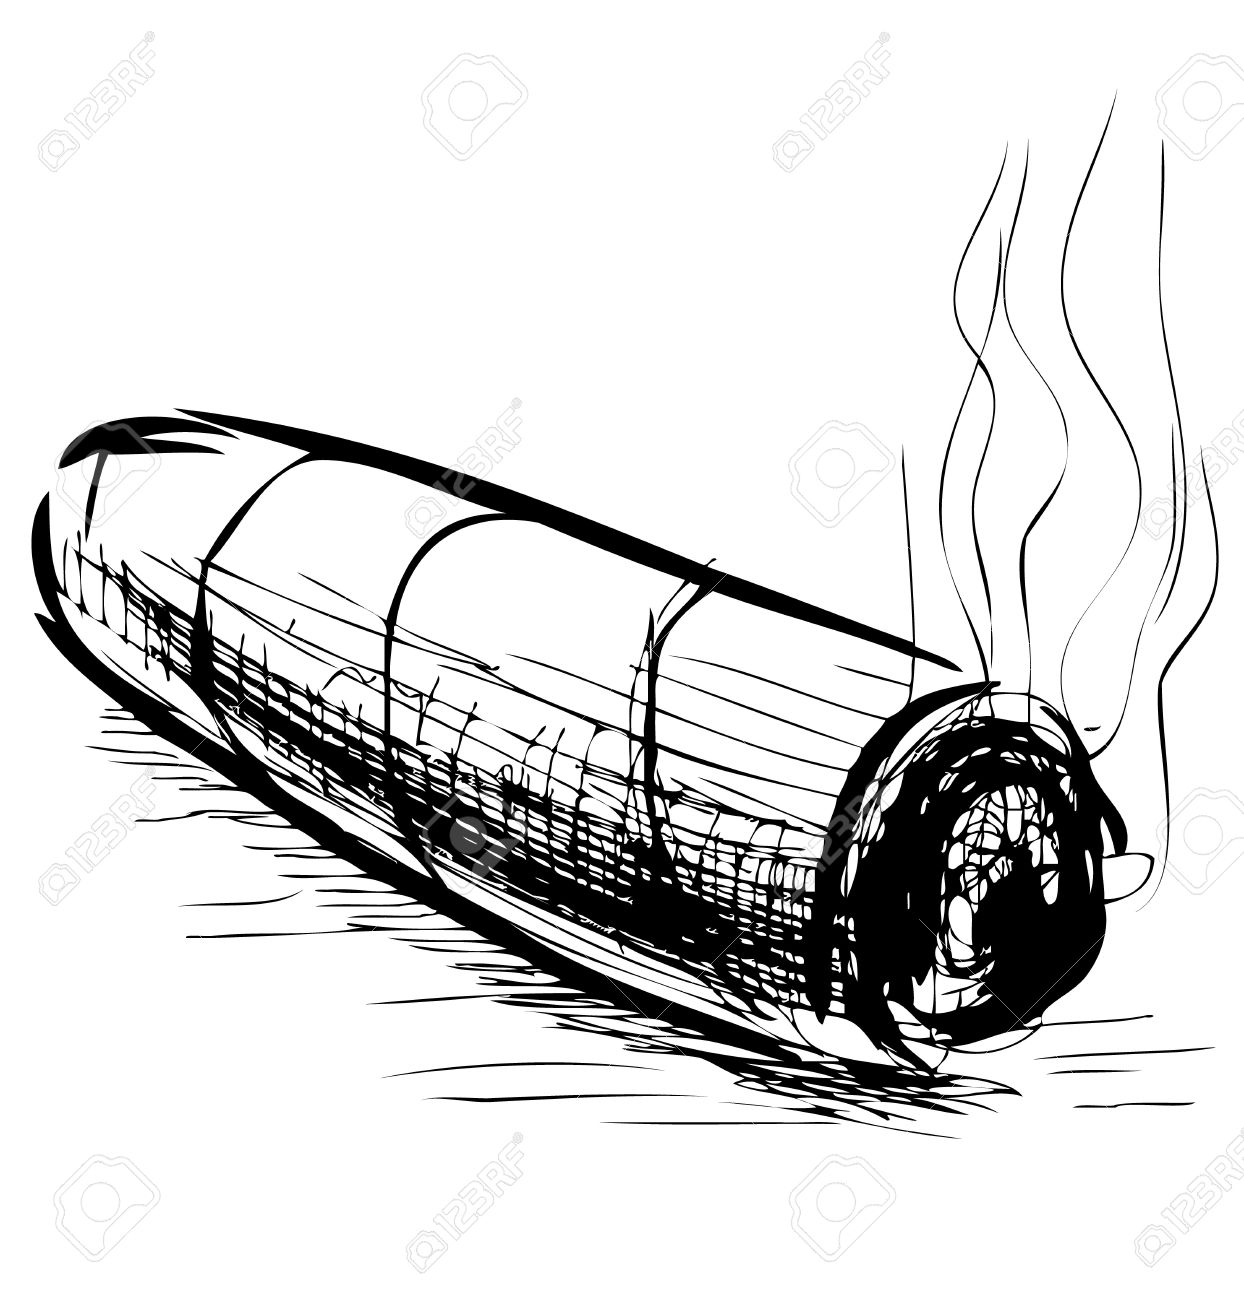 Cigar clipart black and white. Station